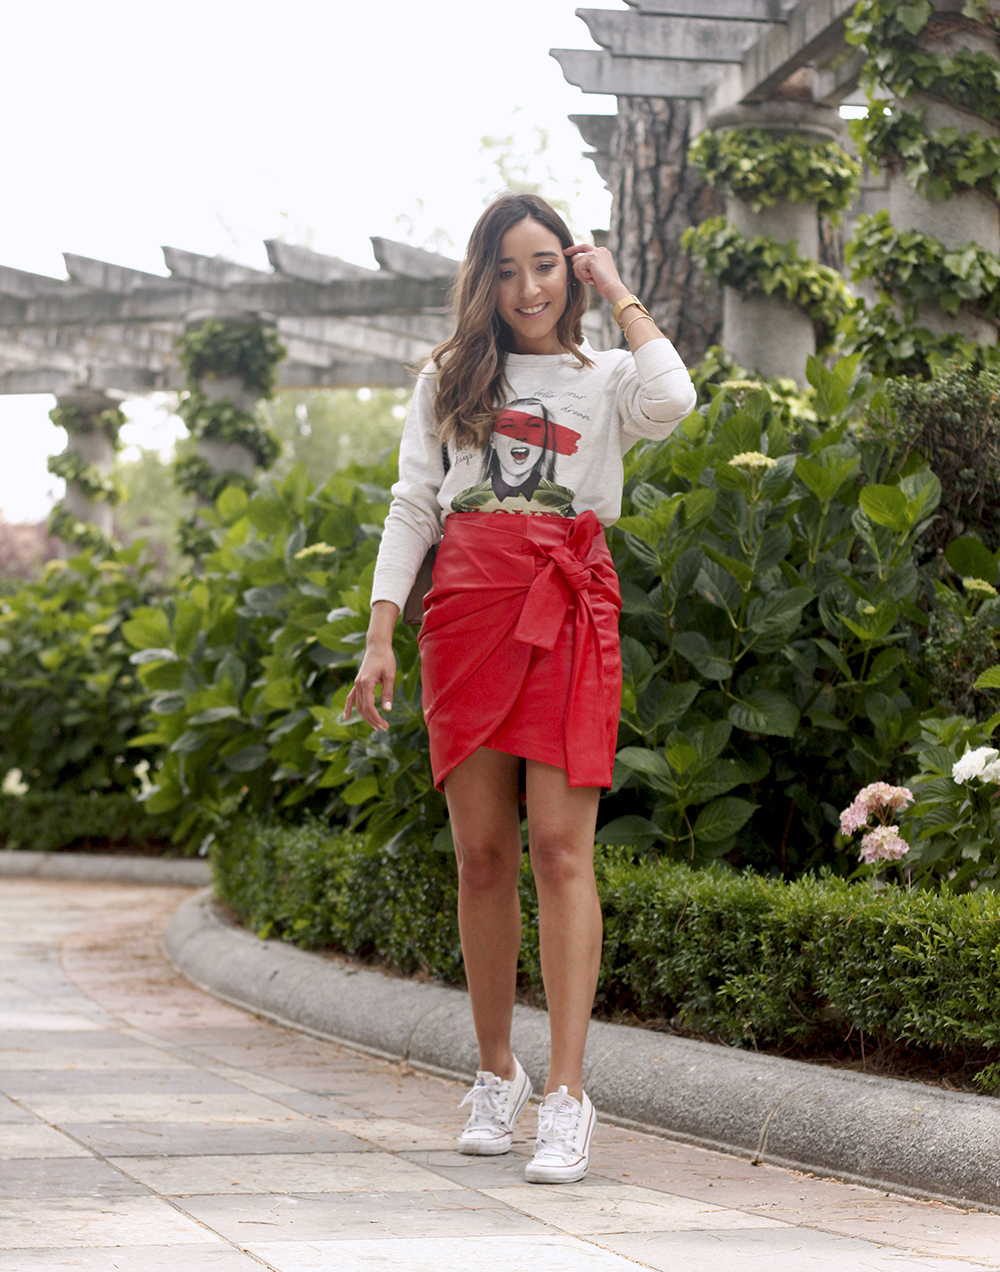 Red Leather Skirt kate moss sweatshirt converse gucci bag street style outfit 20195